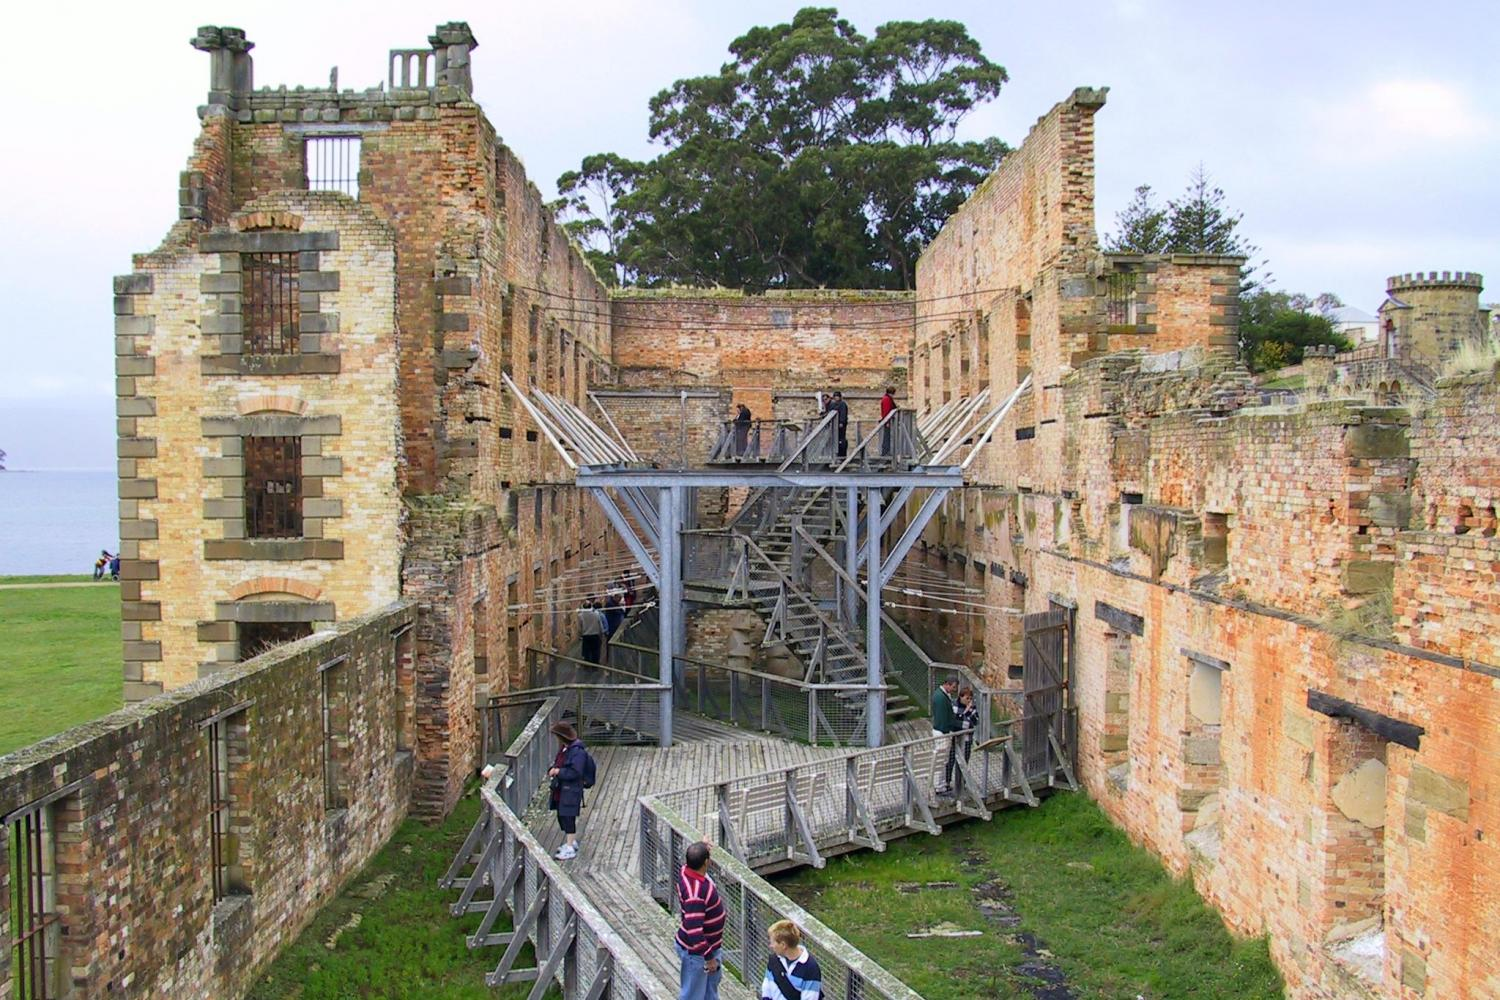 port arthur latin dating site Port arthur is now one of australia's most important historic areas in 2010 it was included on the unesco list of world heritage sites as one of the australian convict sites  it is officially tasmania's top tourist attraction.